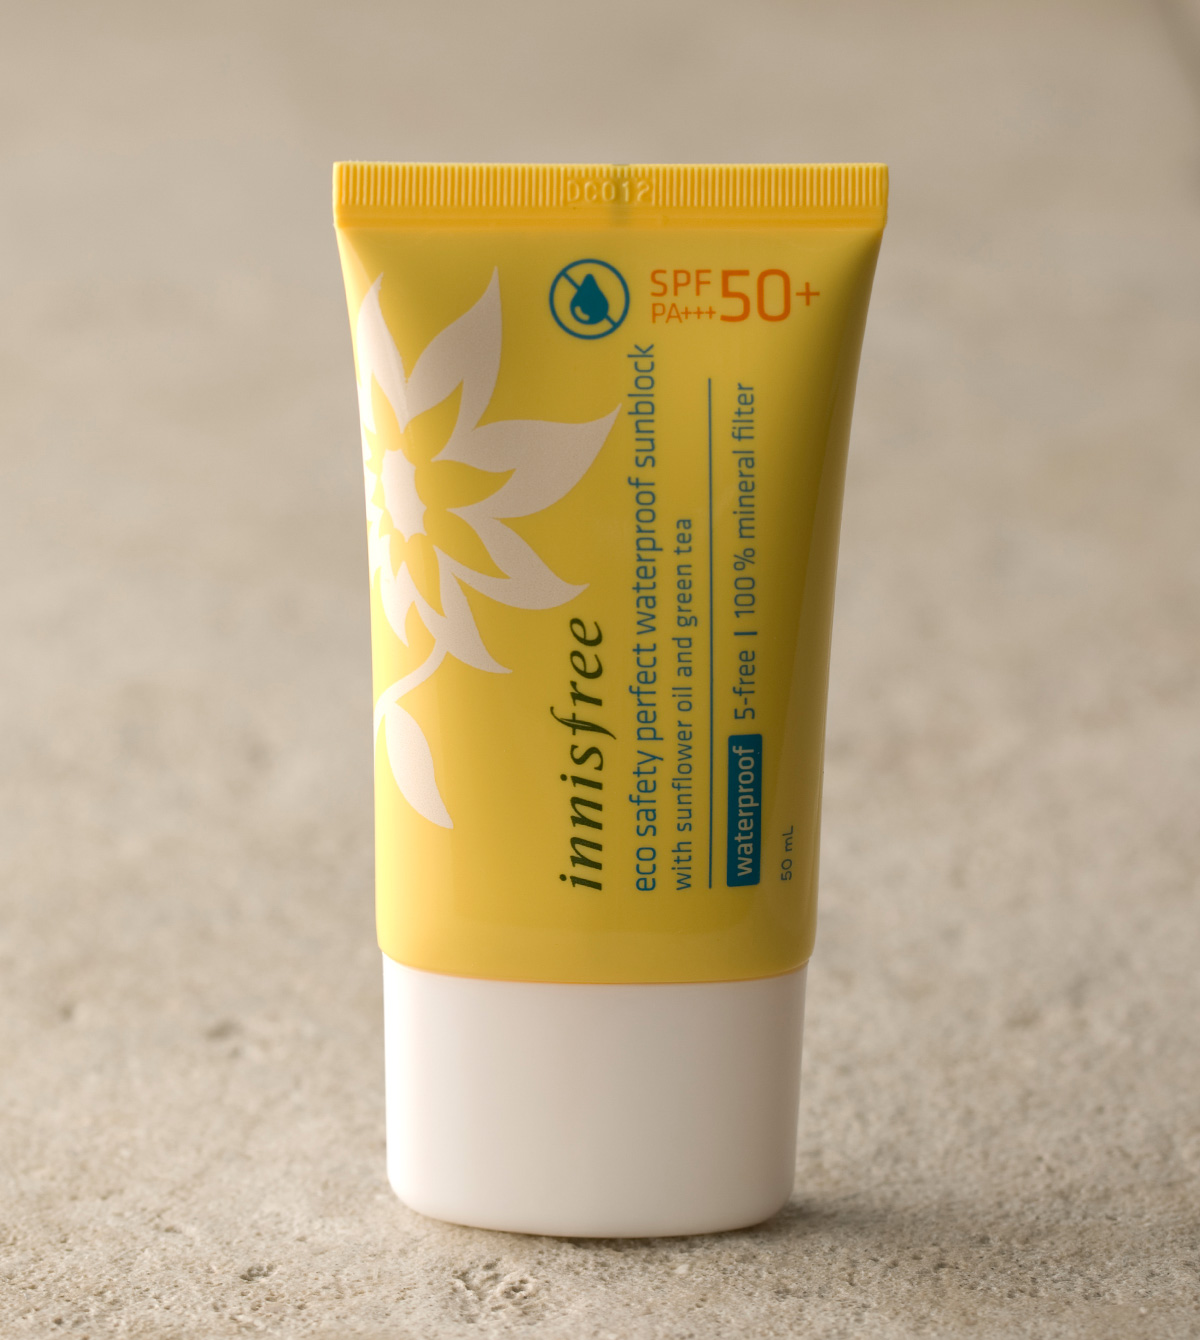 INNISFREE WATERPROOF SUNBLOCK SPF 50+ PA+++ 1